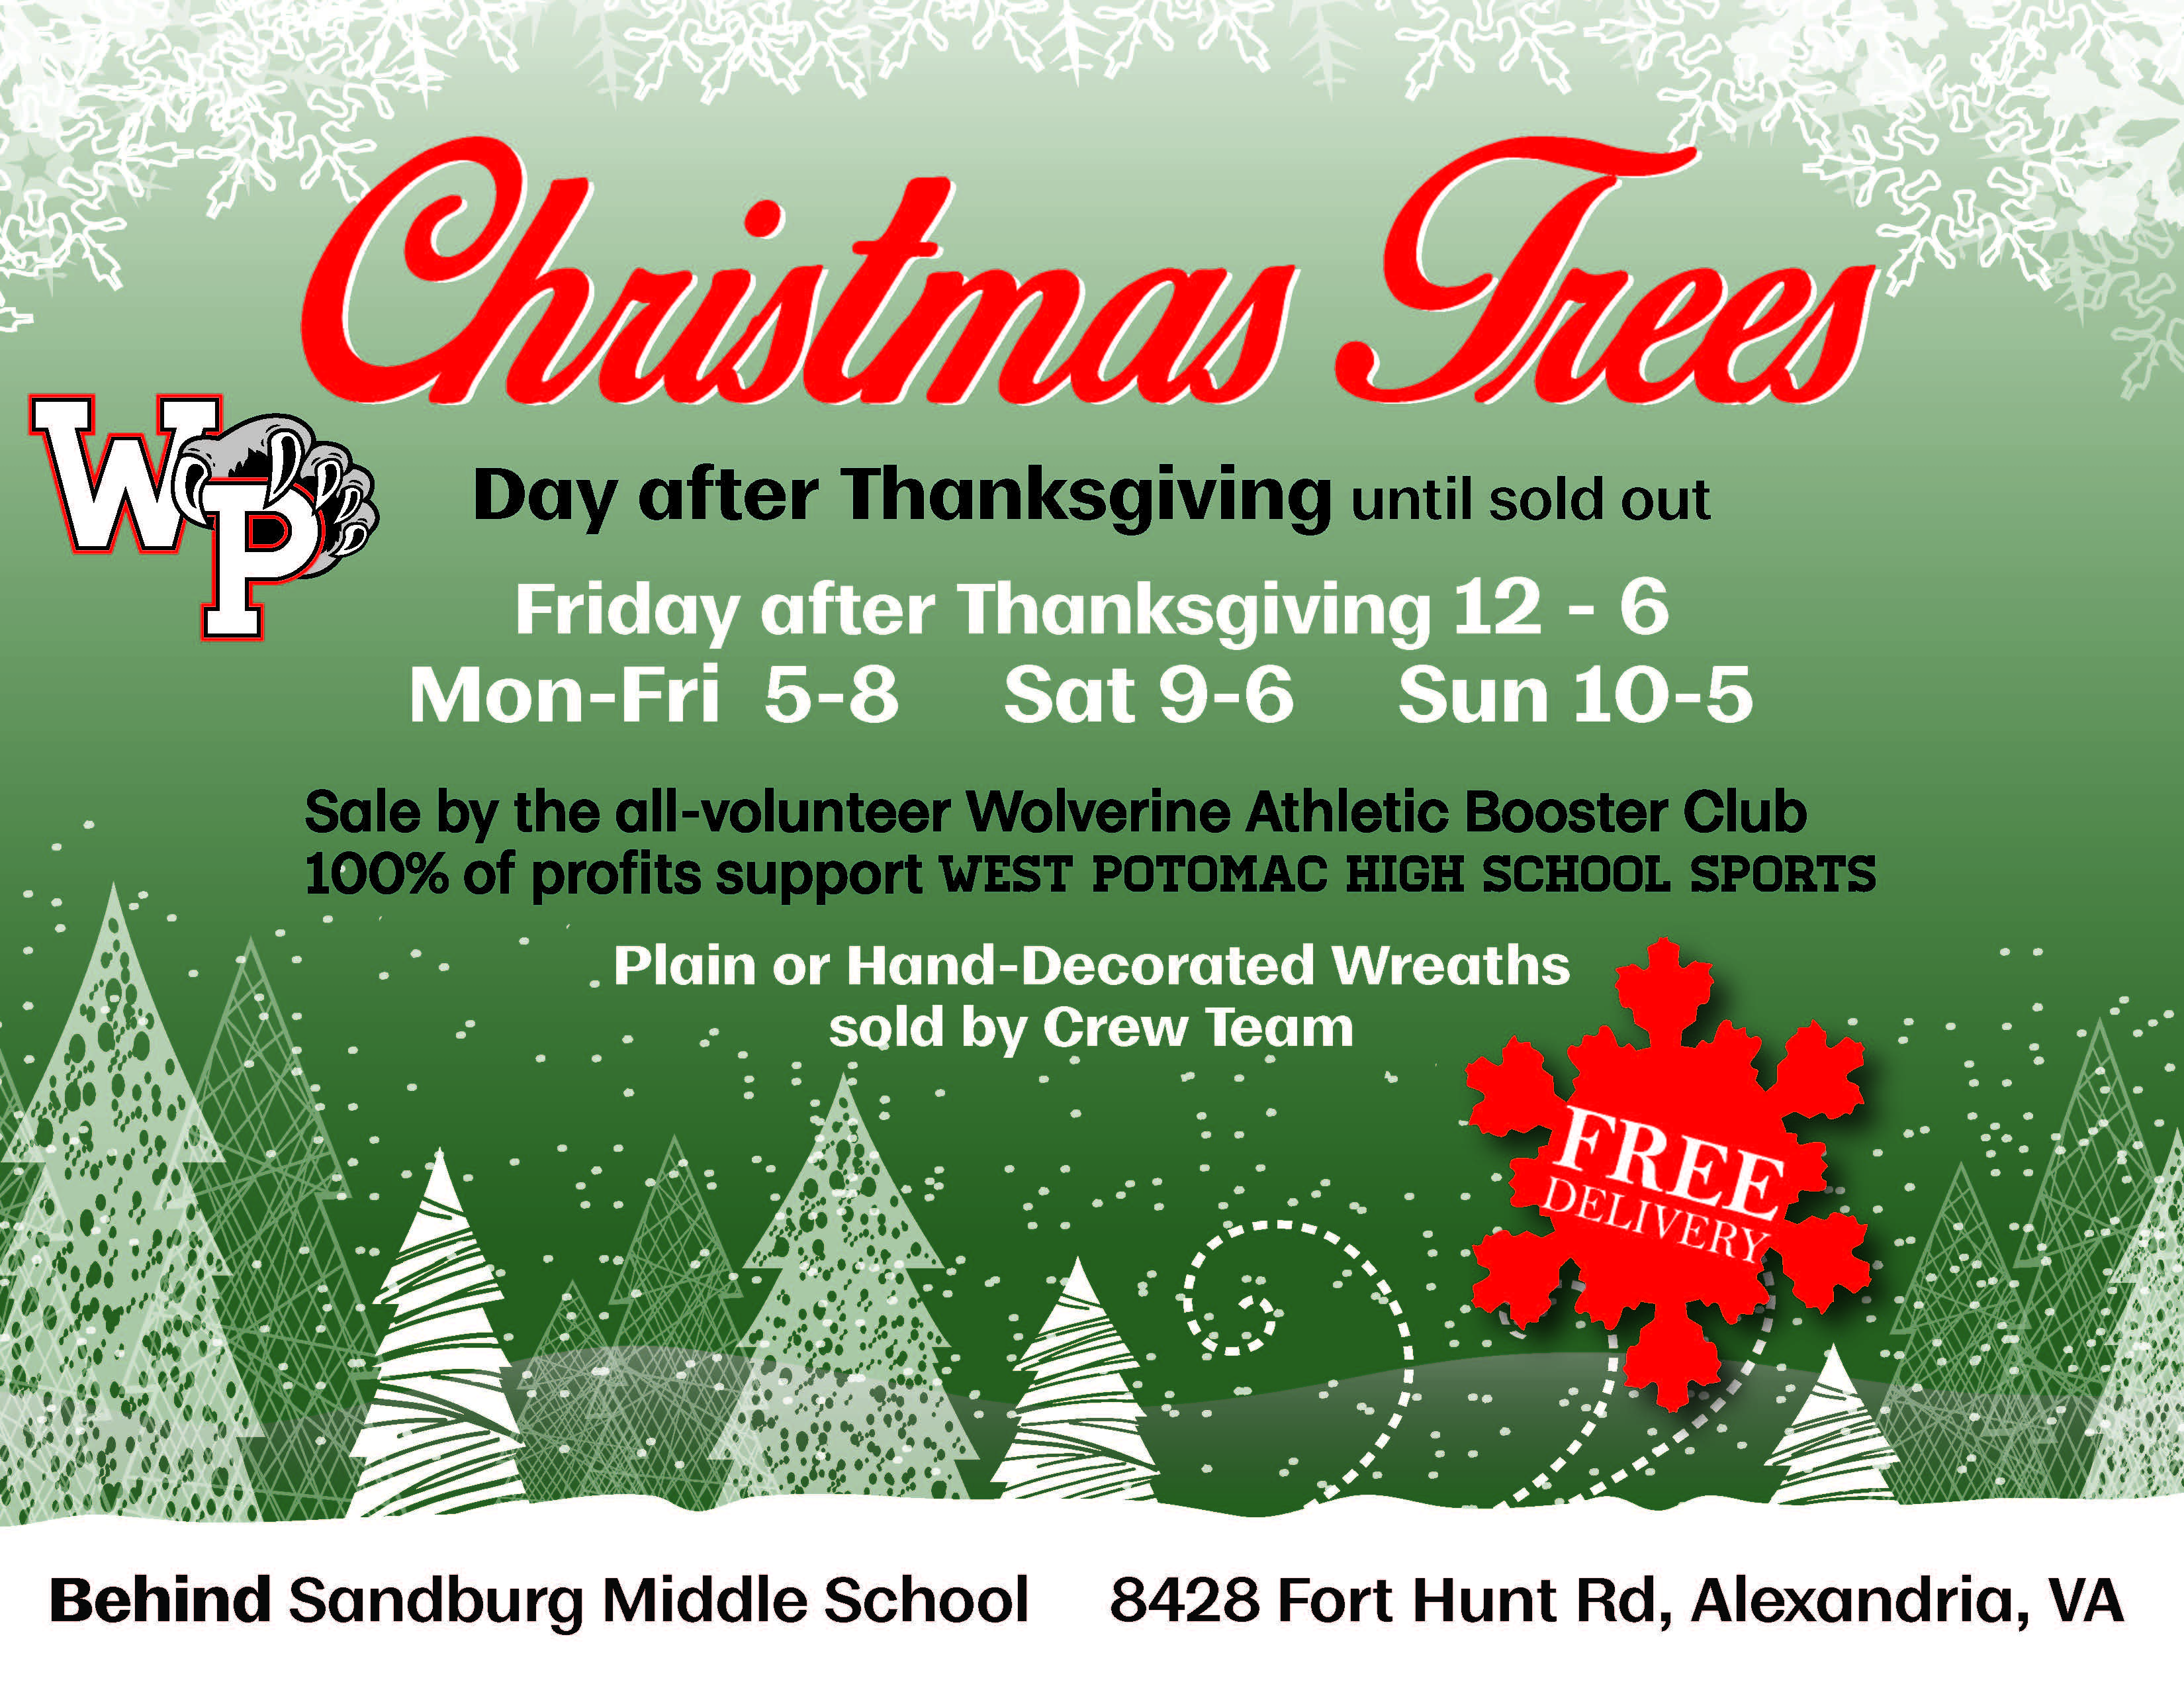 Christmas Tree Wreath Sale Wabc Fundraiser West Potomac High